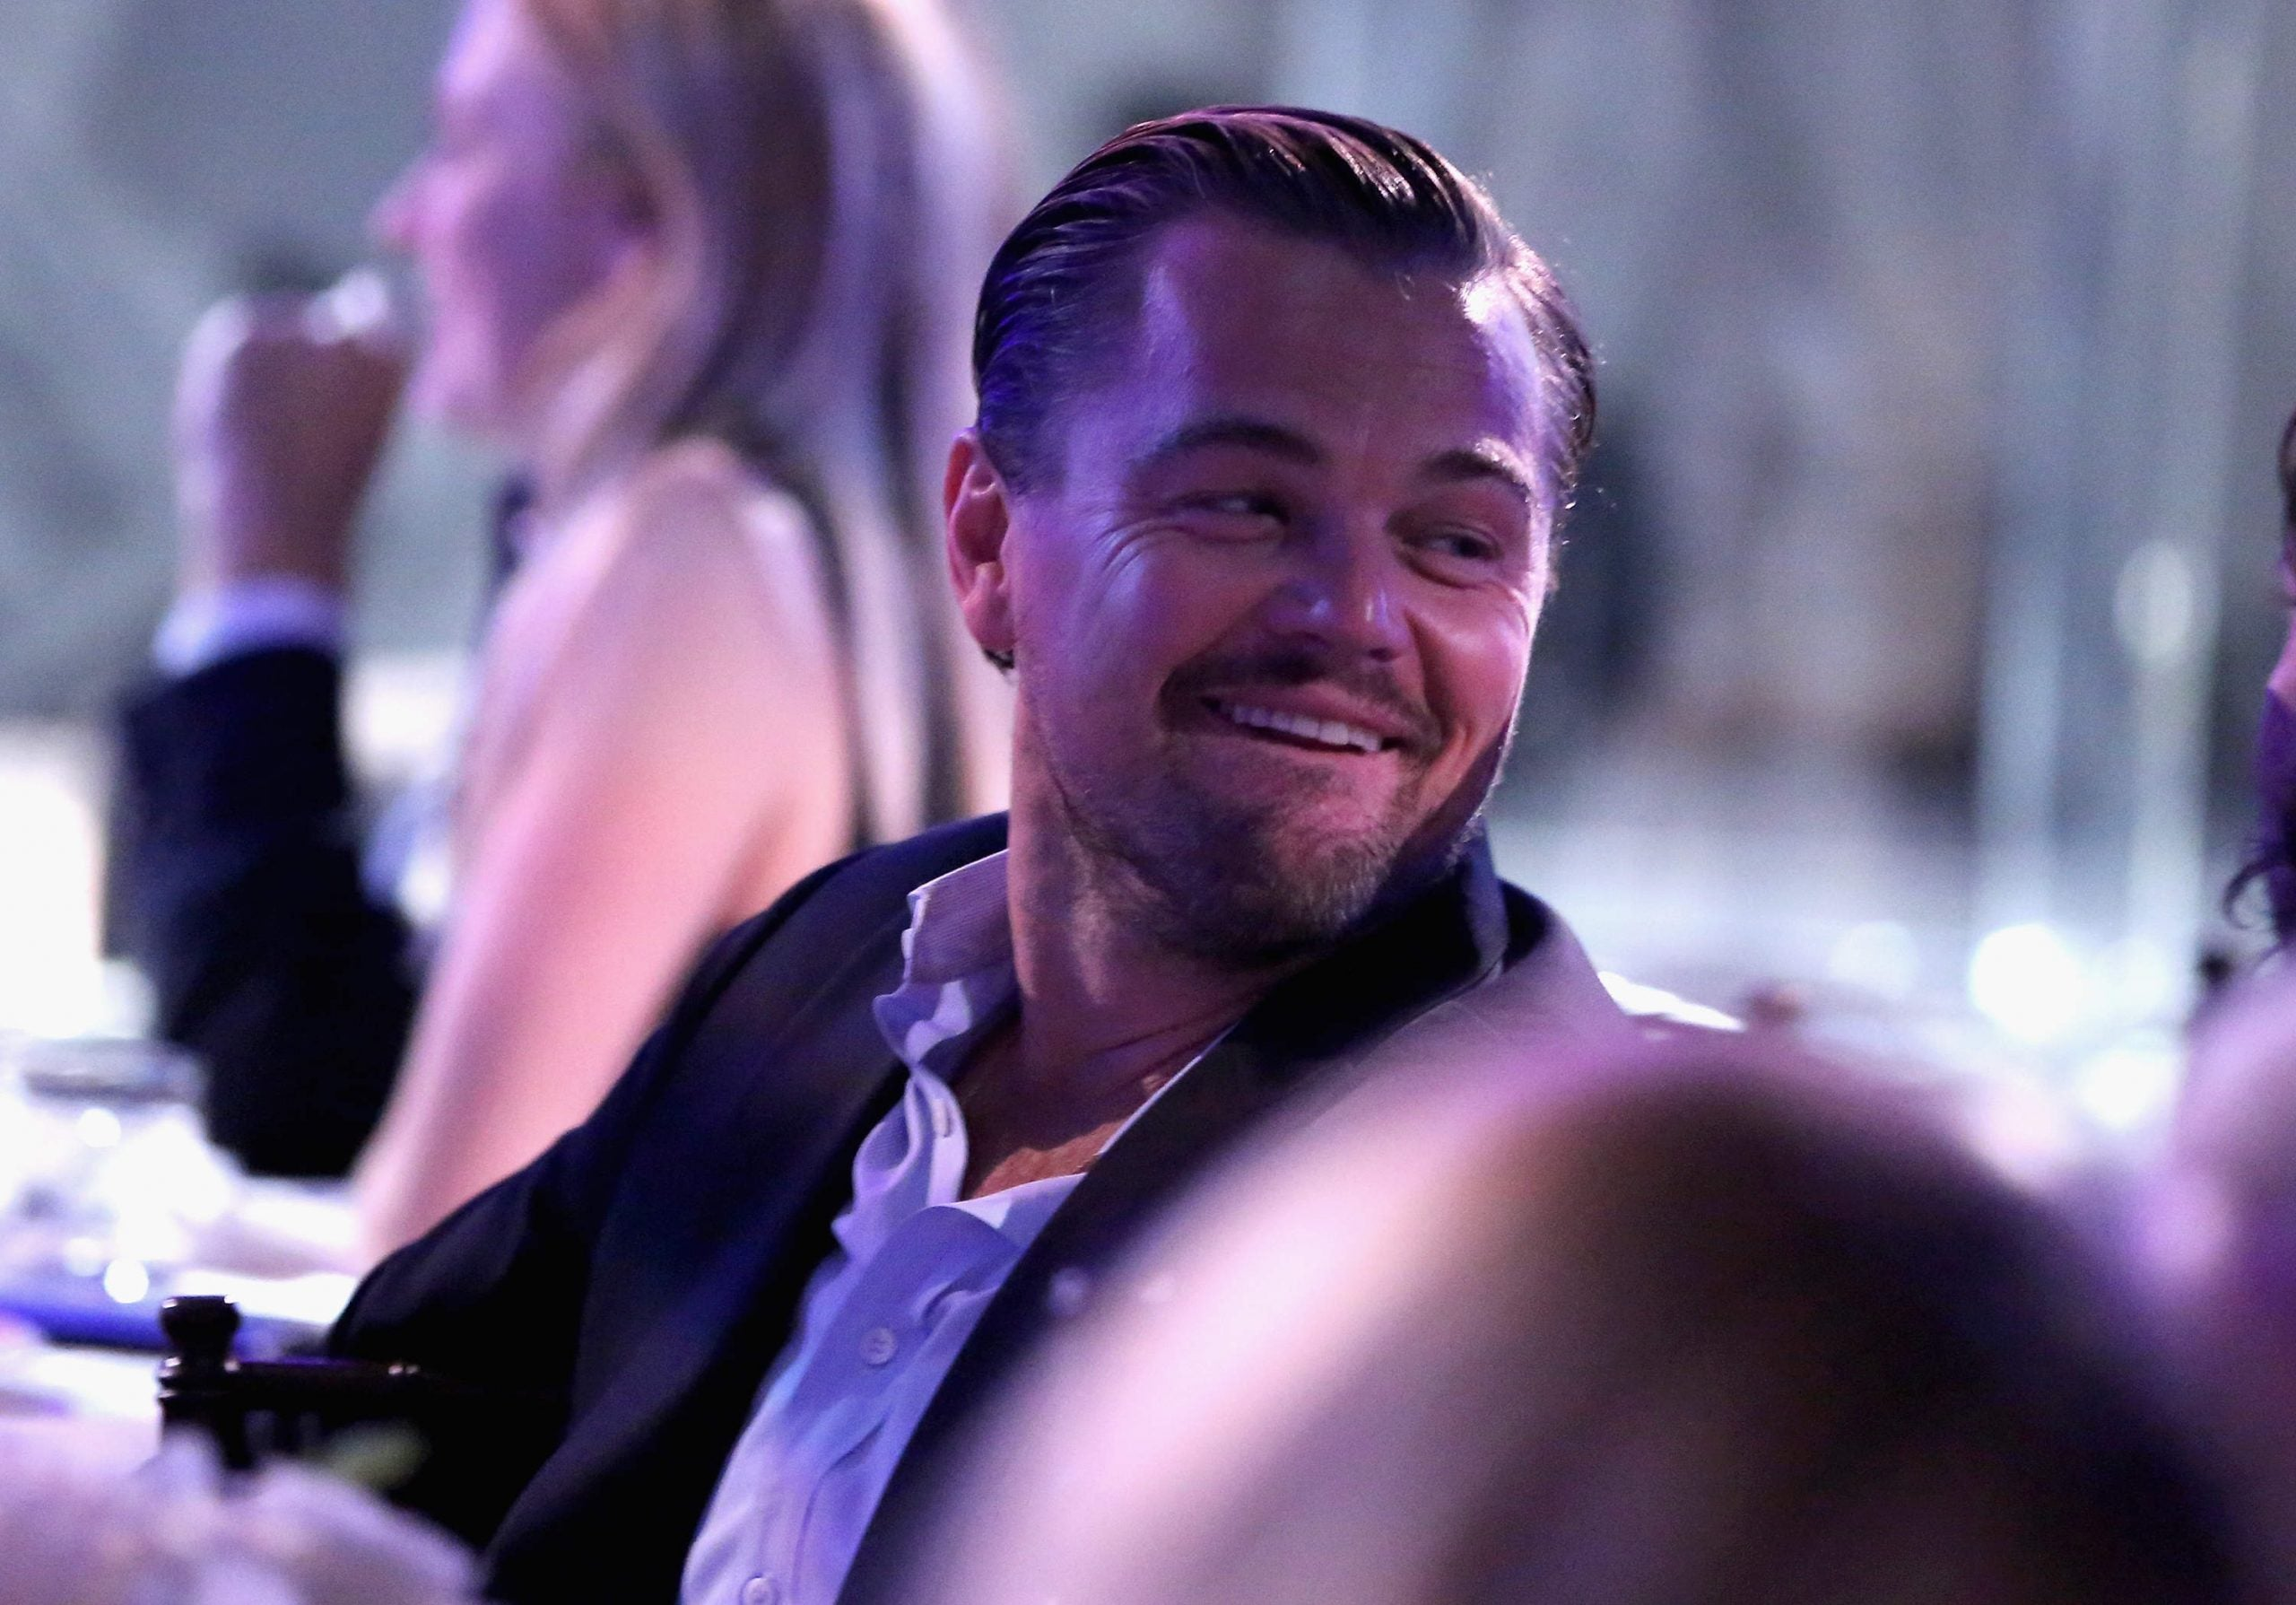 Leonardo DiCaprio is on the World Service – and it's clear he takes Method acting seriously